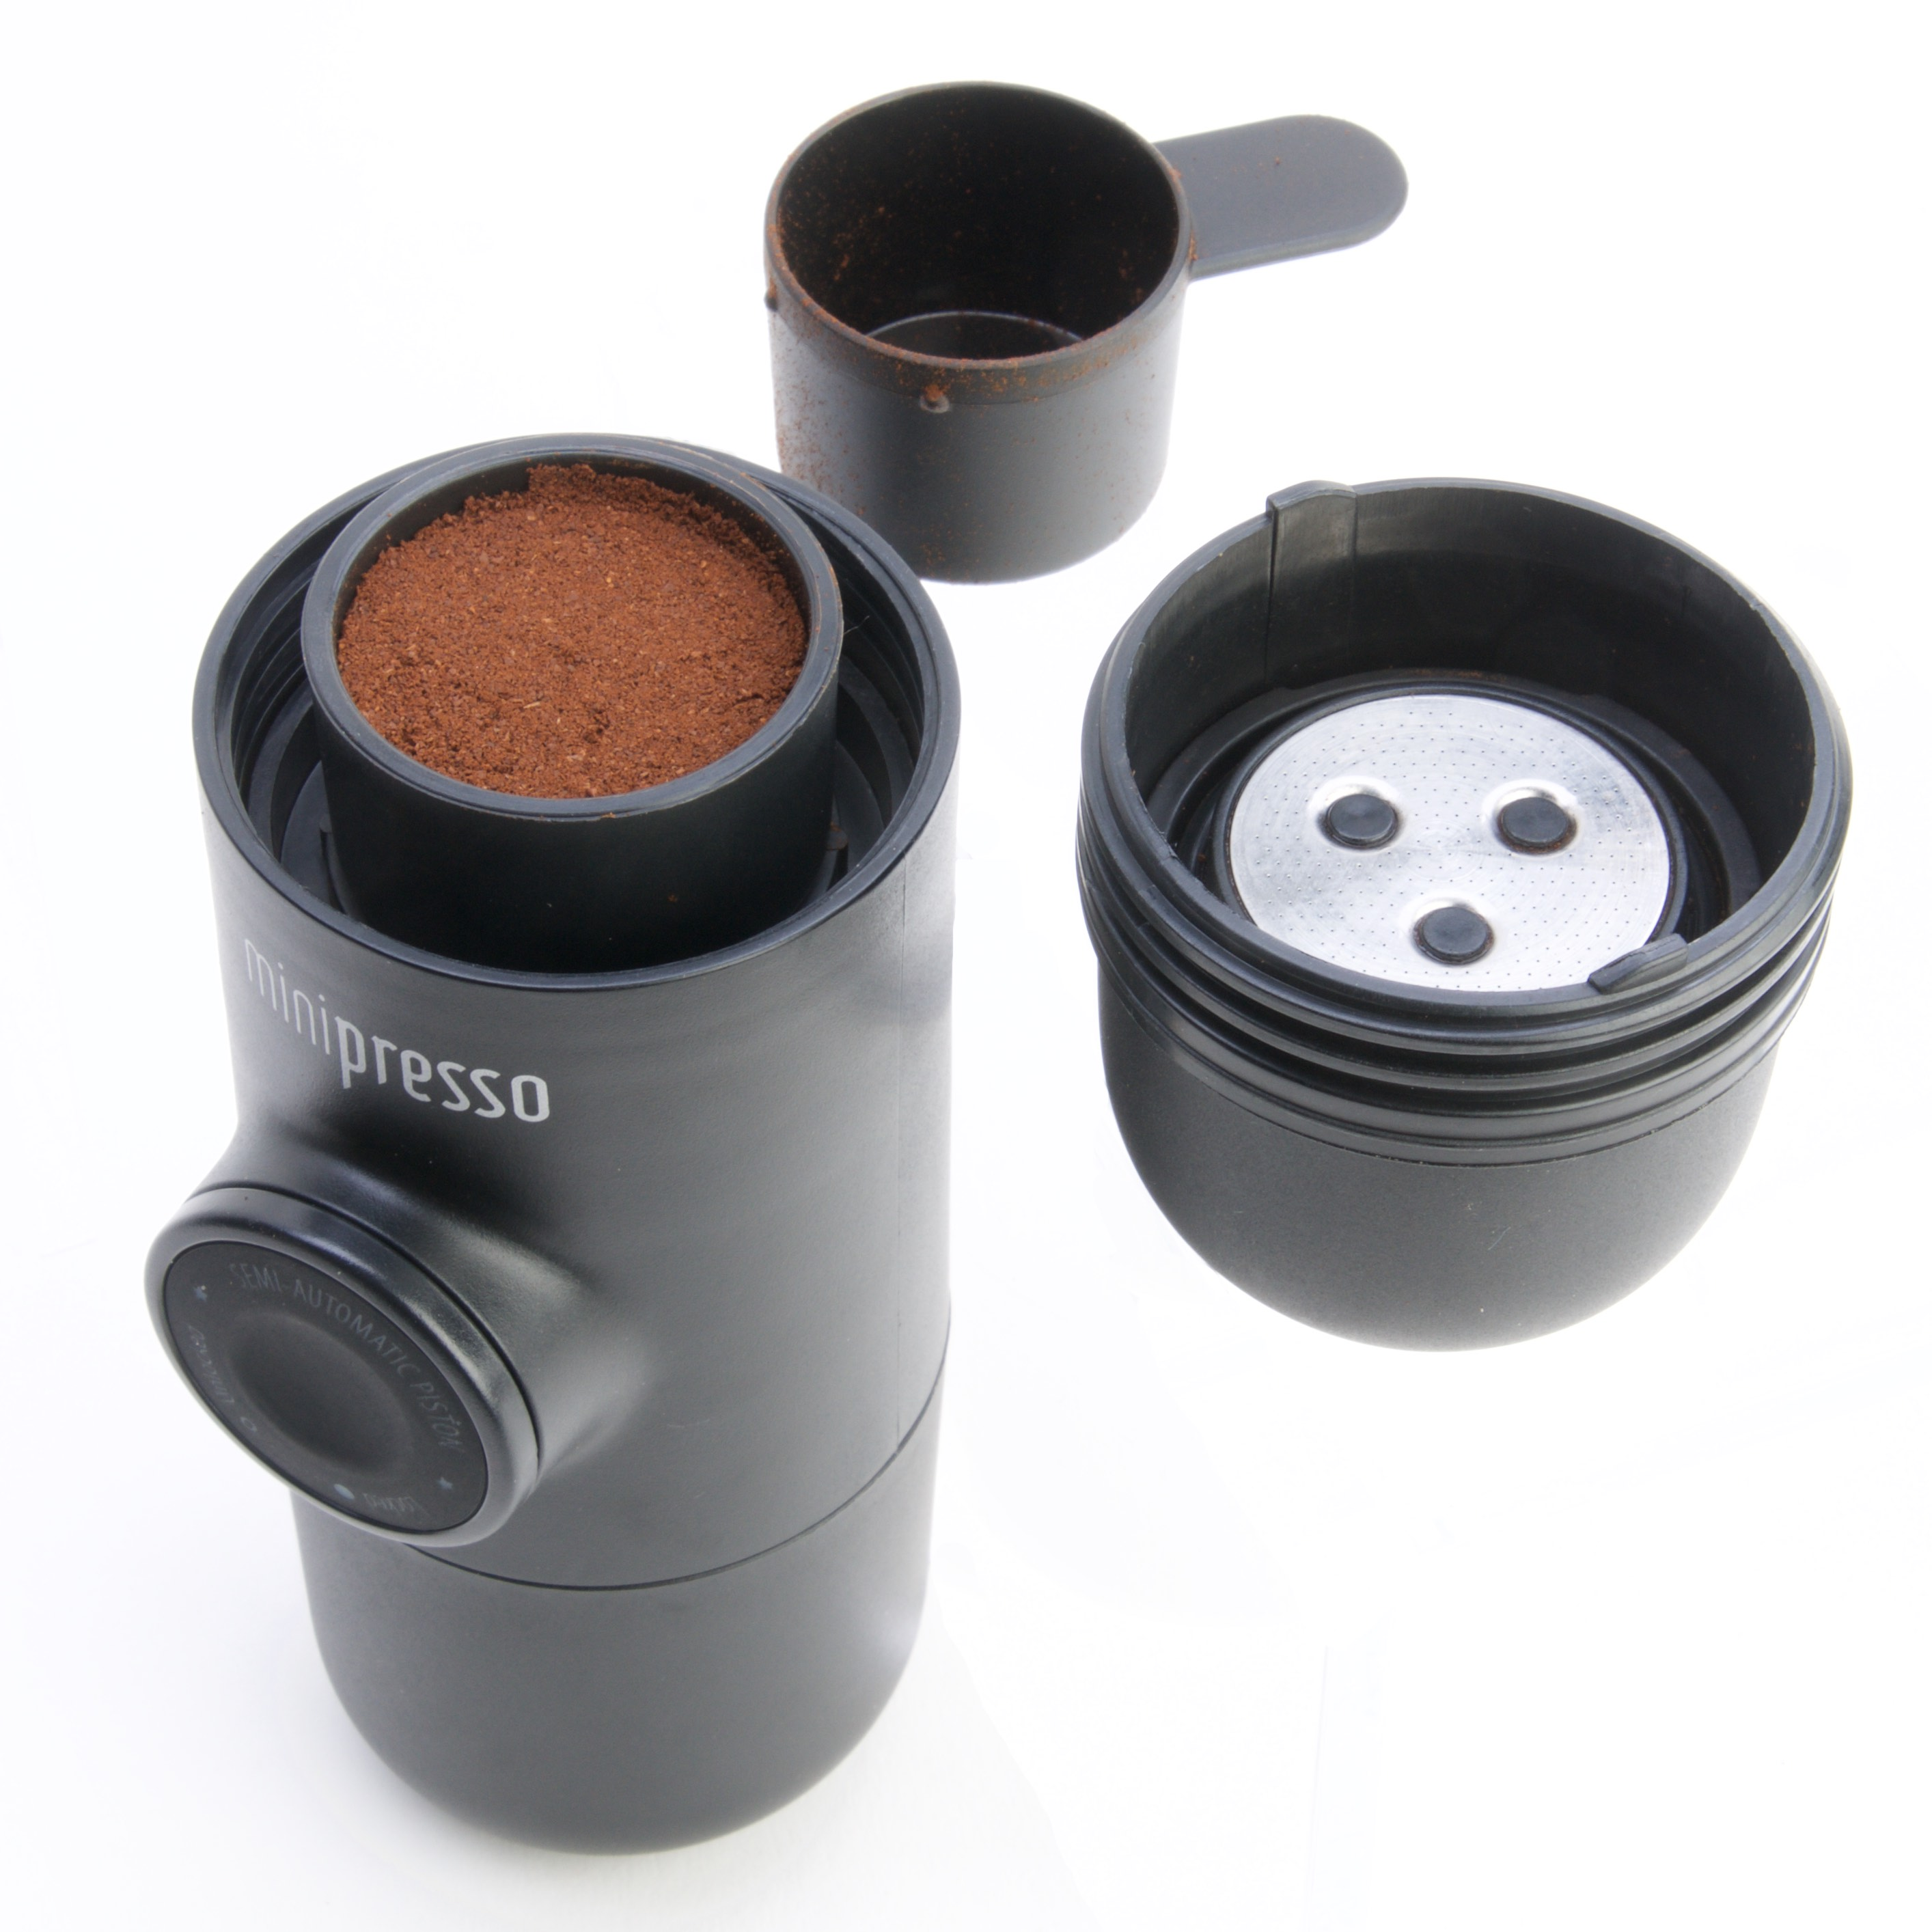 Tamp down the coffee with the scoop, place inside and screw on the outlet end